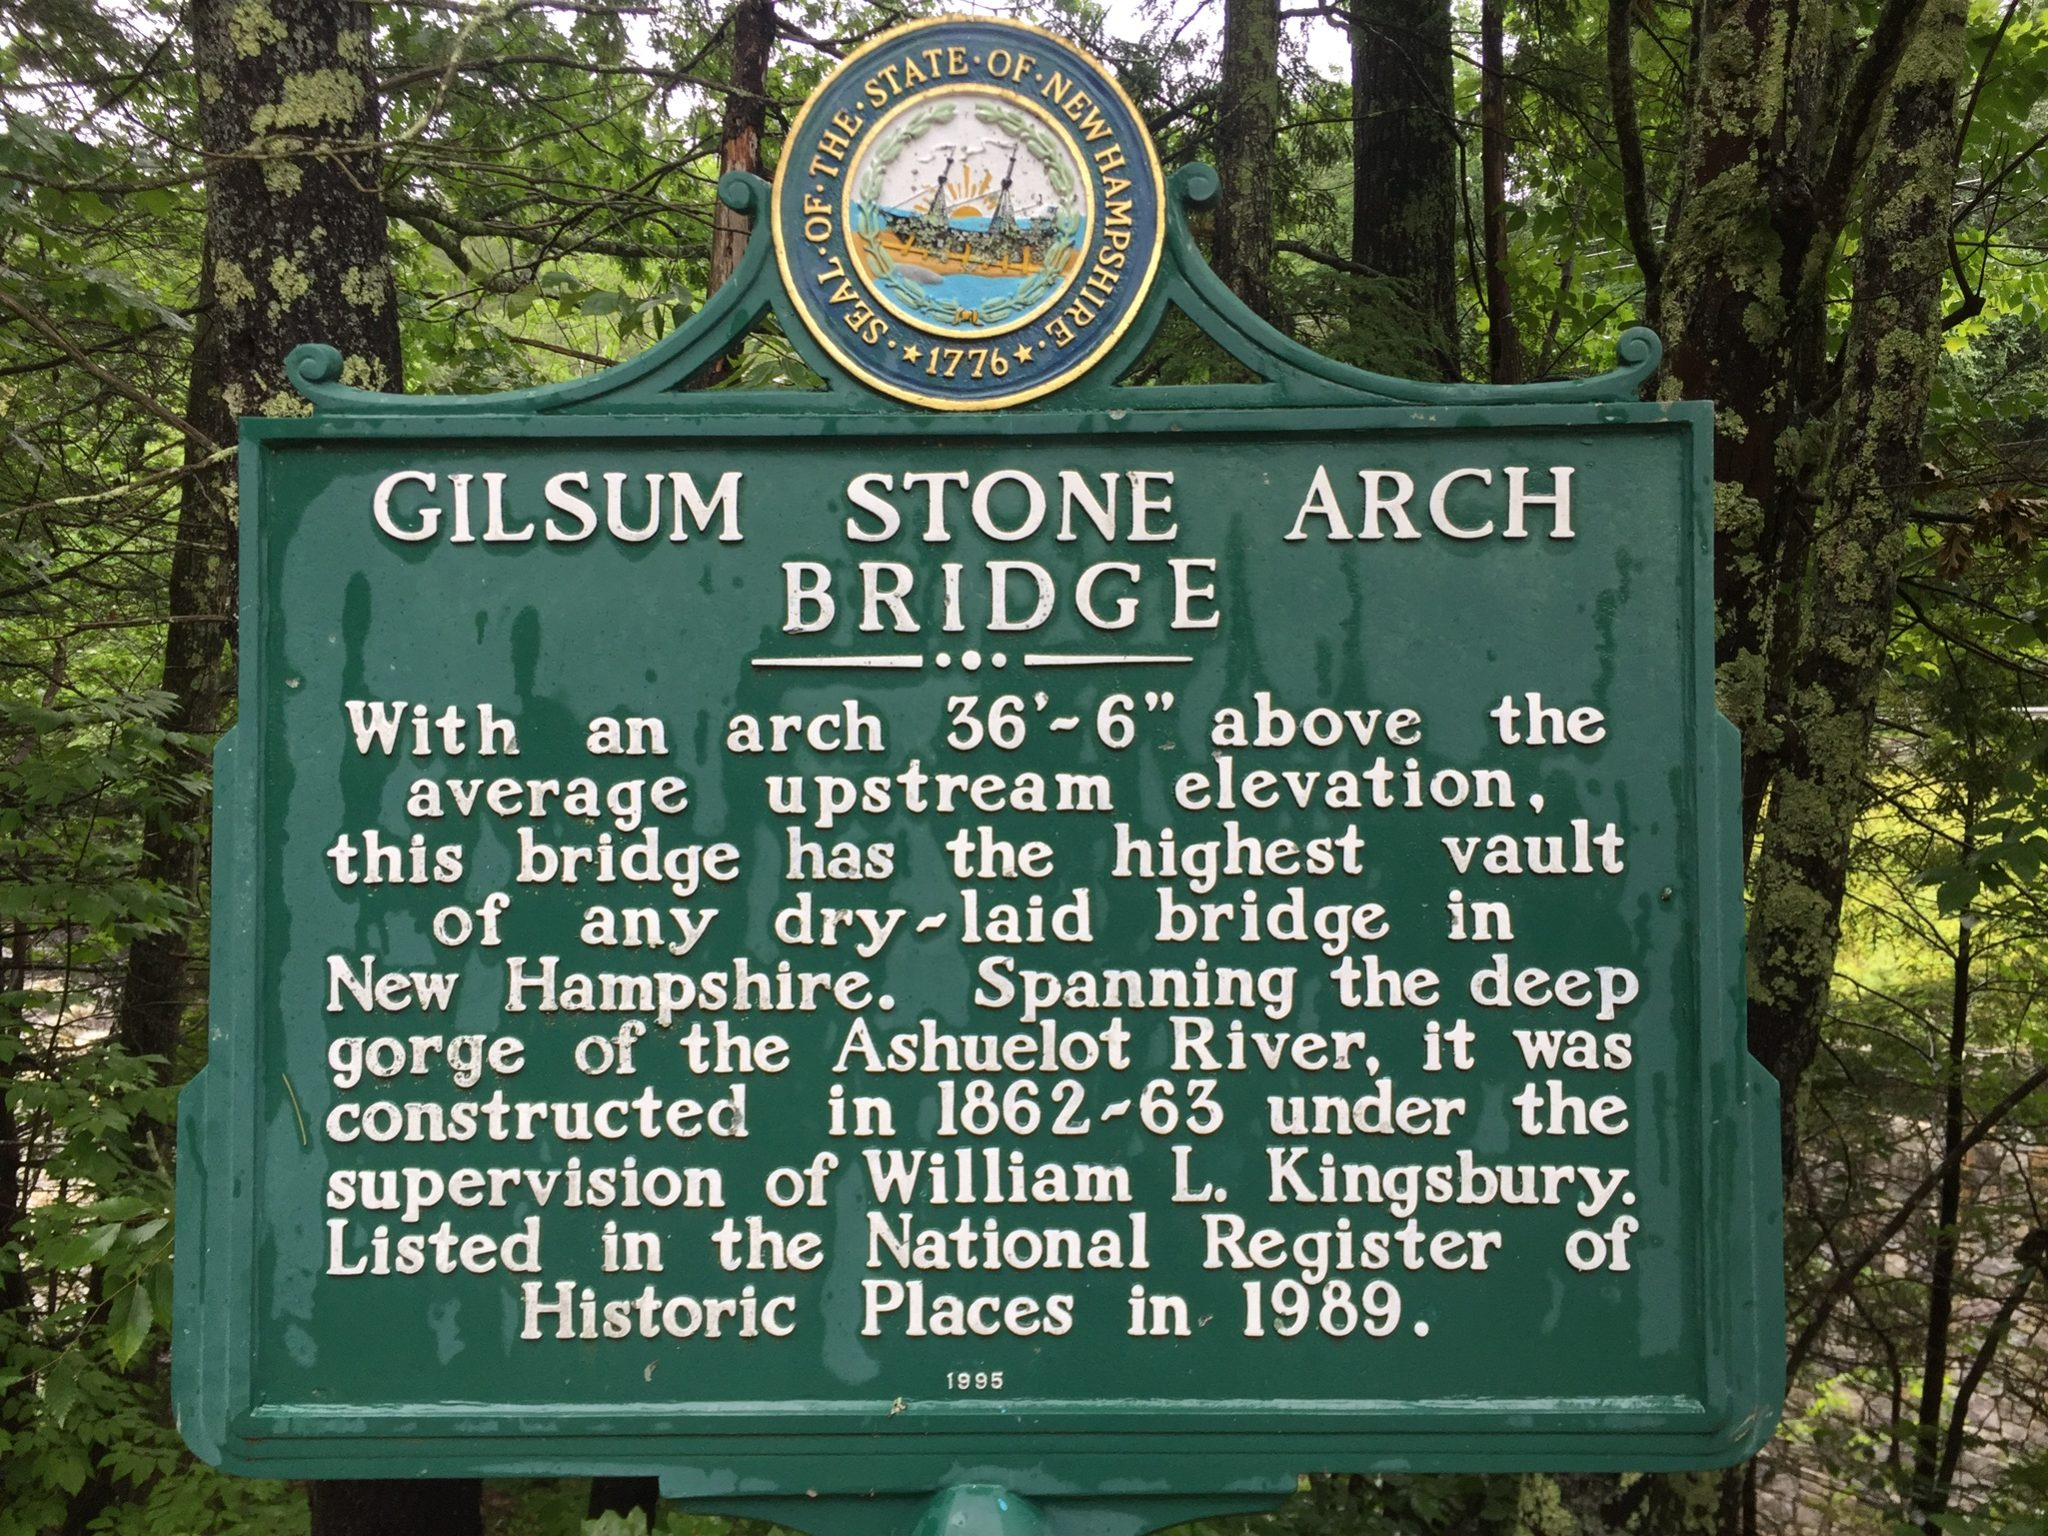 Gilsum Stone Arch Bridge Historic Marker